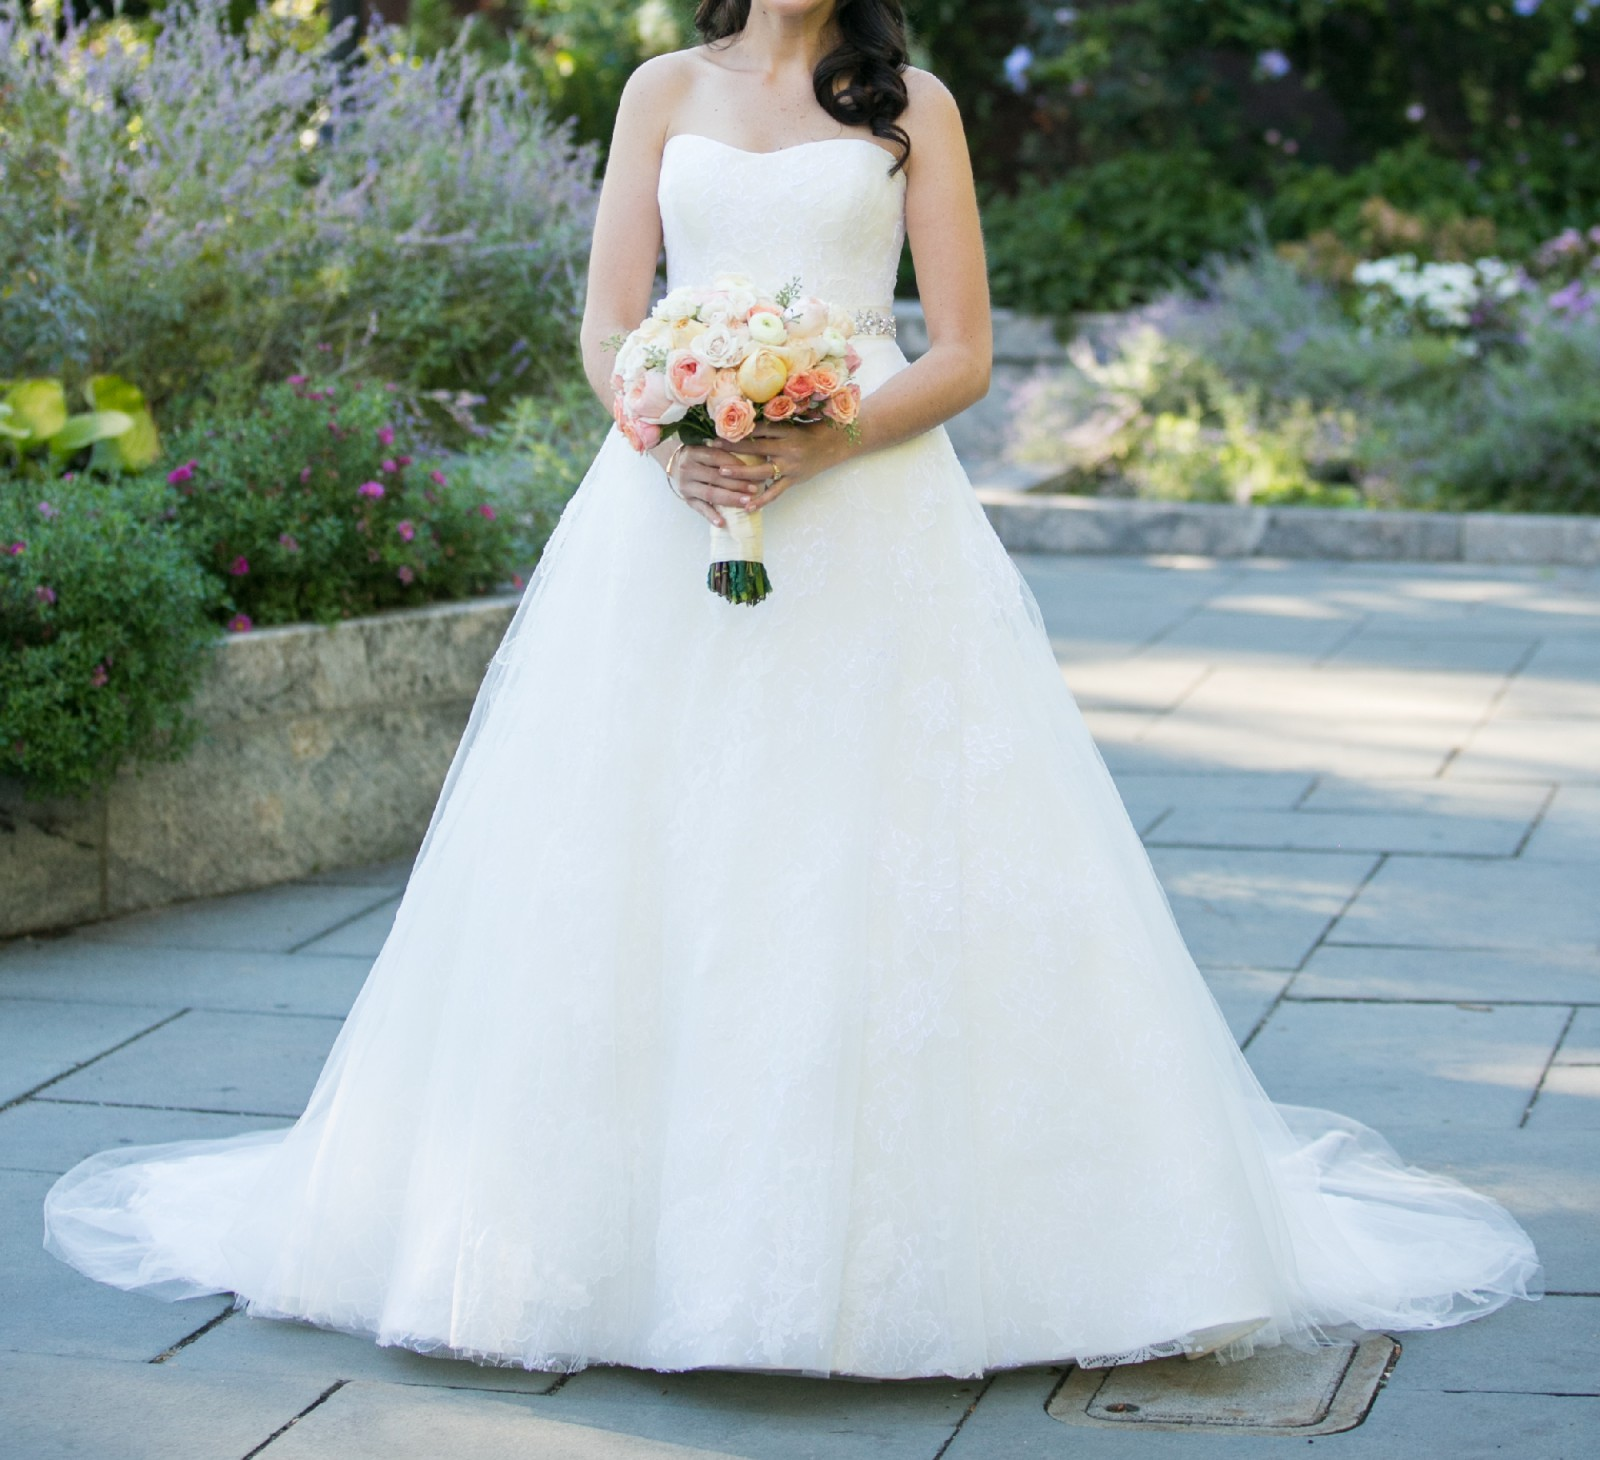 Vera Wang Pandora Preowned Wedding Dress On Sale 83% Off